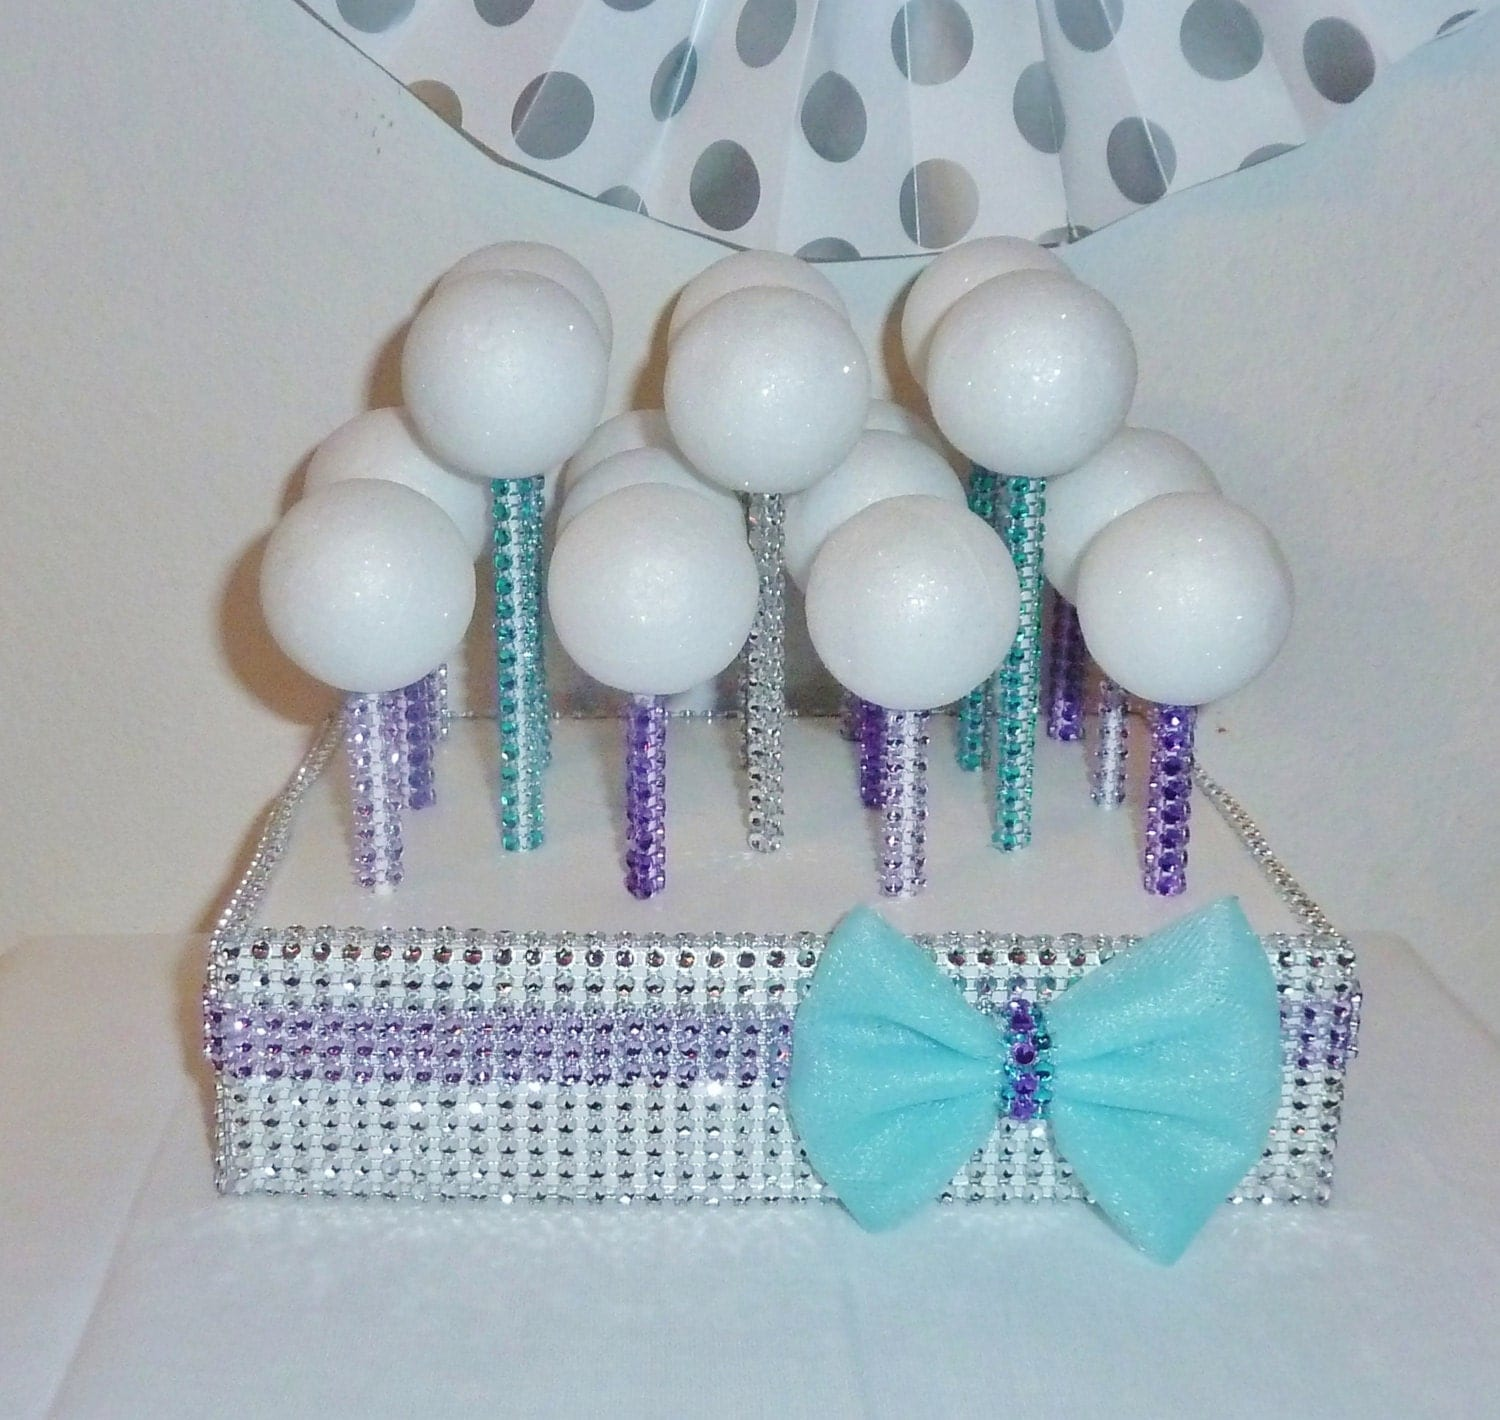 teal aqua lavender purple bling cake pop stand stick display